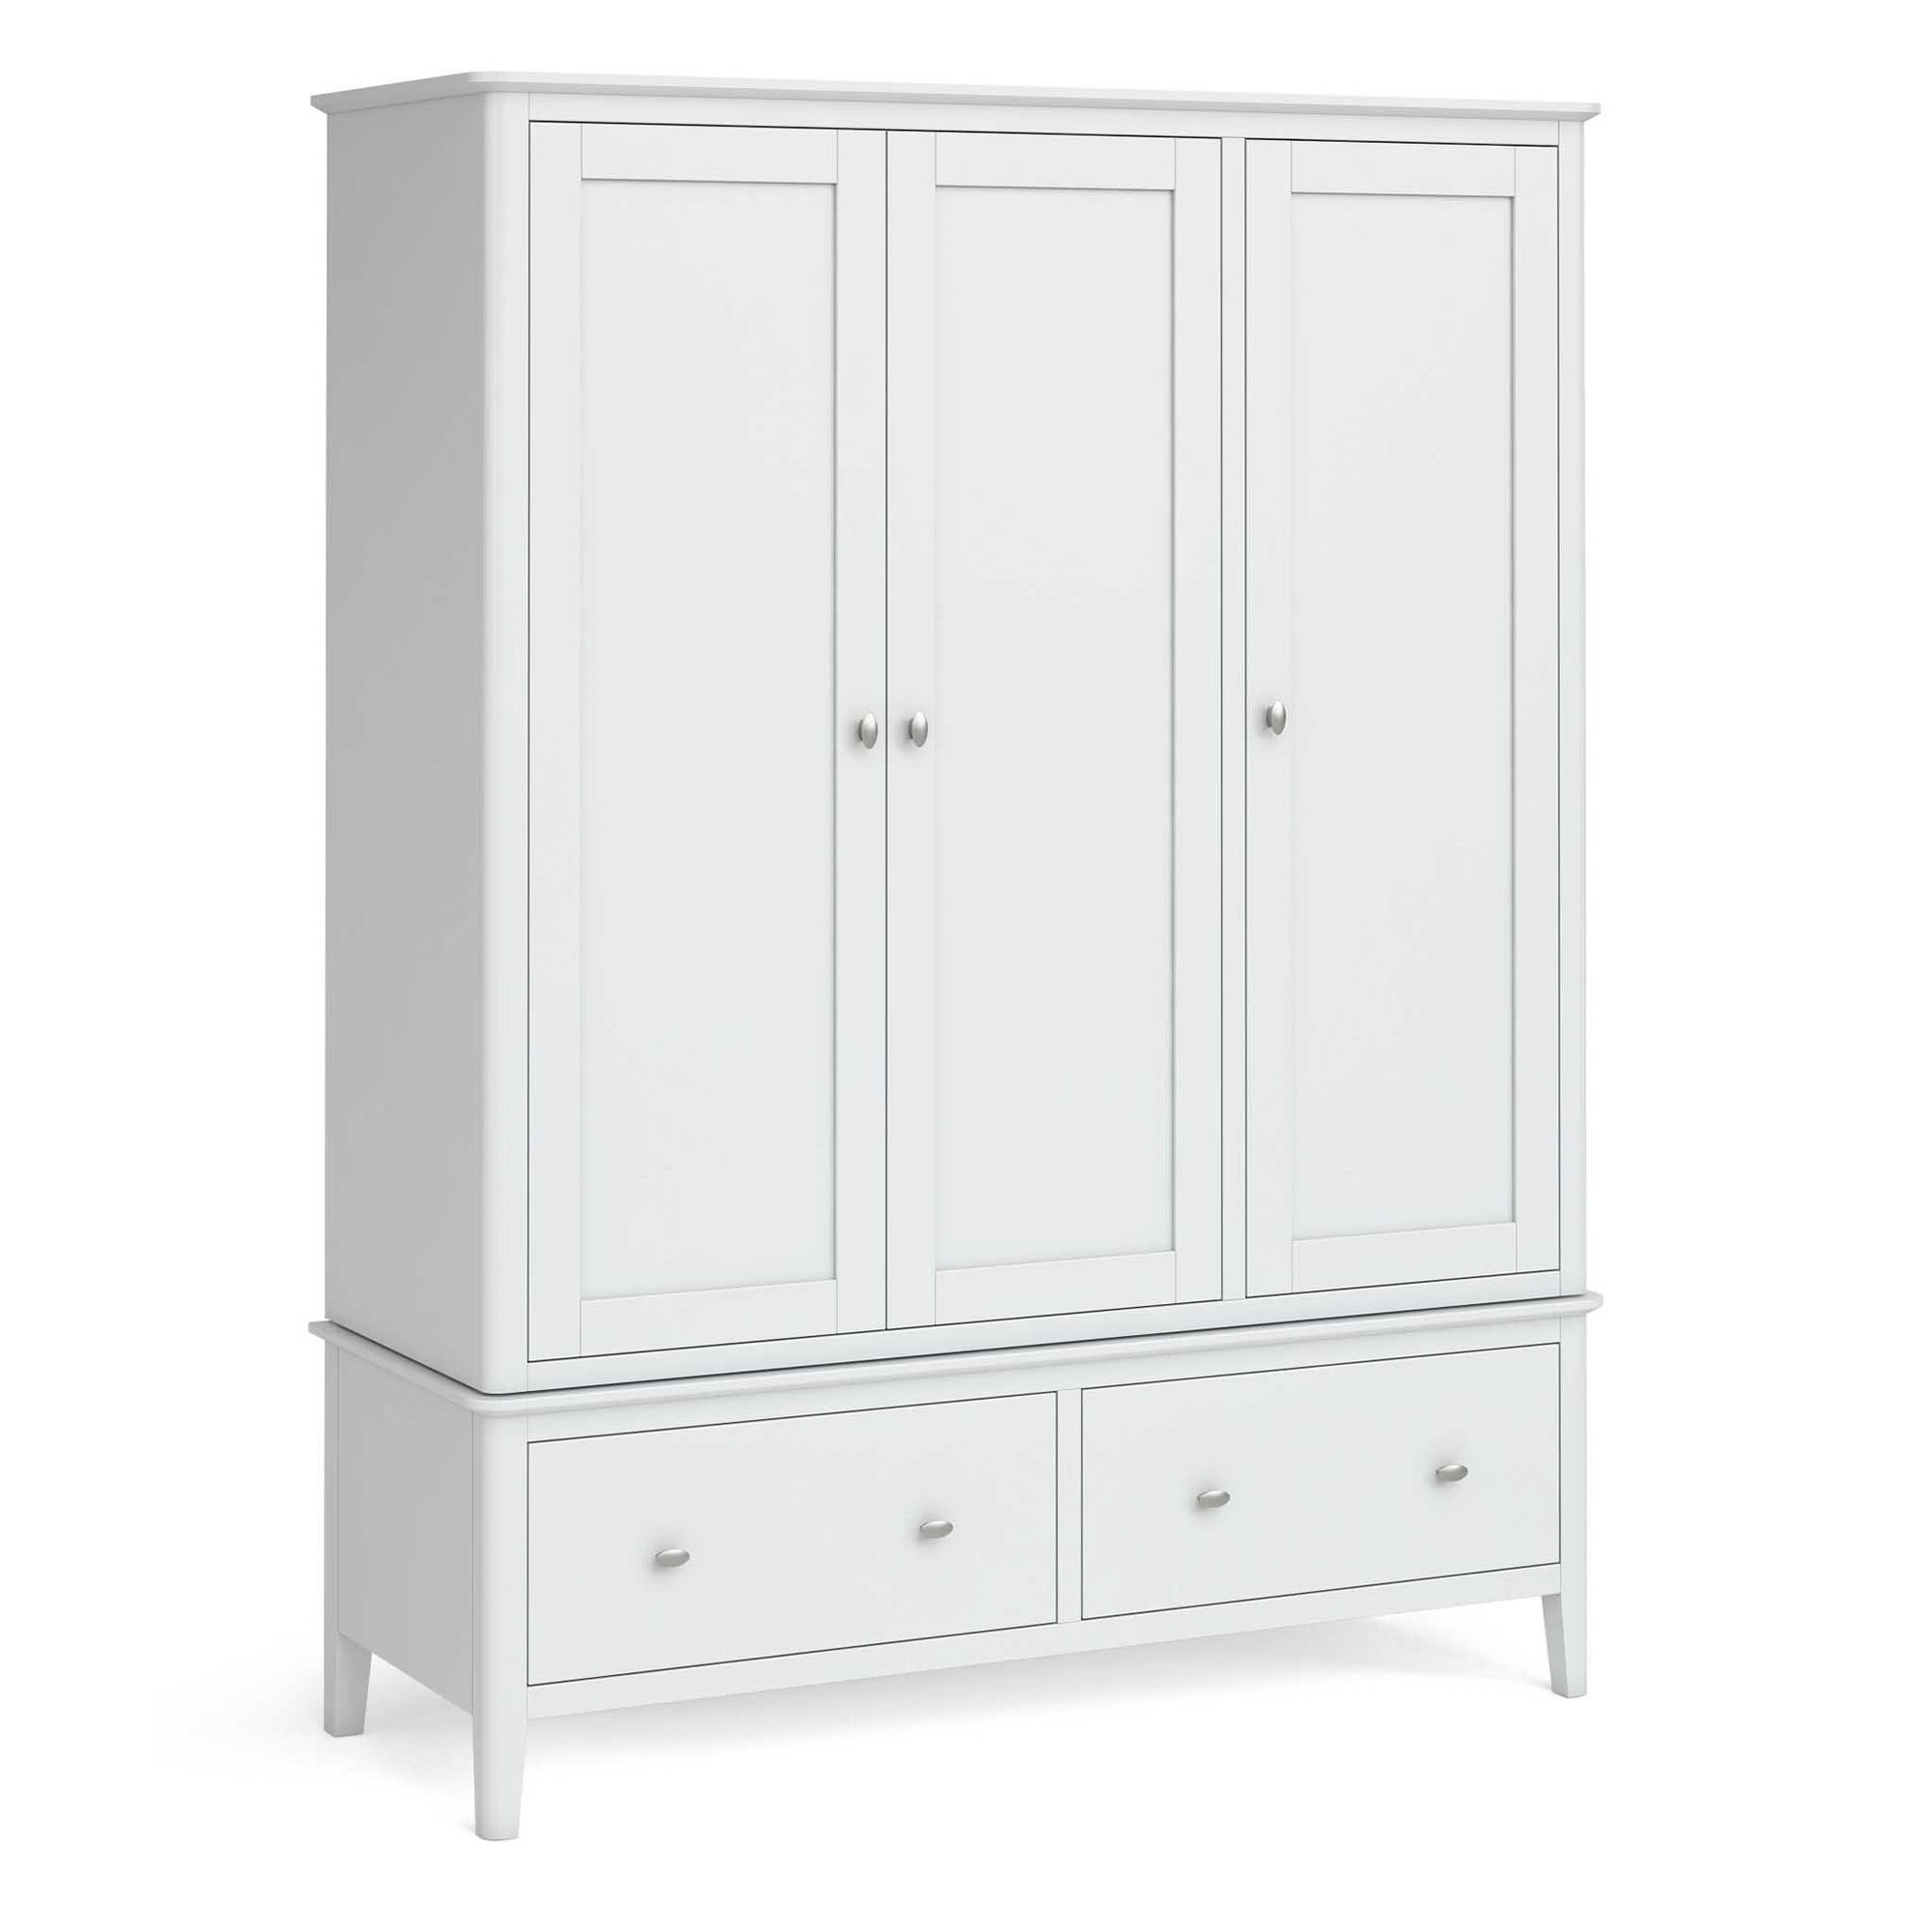 Chester White Triple Wardrobe with Drawers by Roseland Furniture